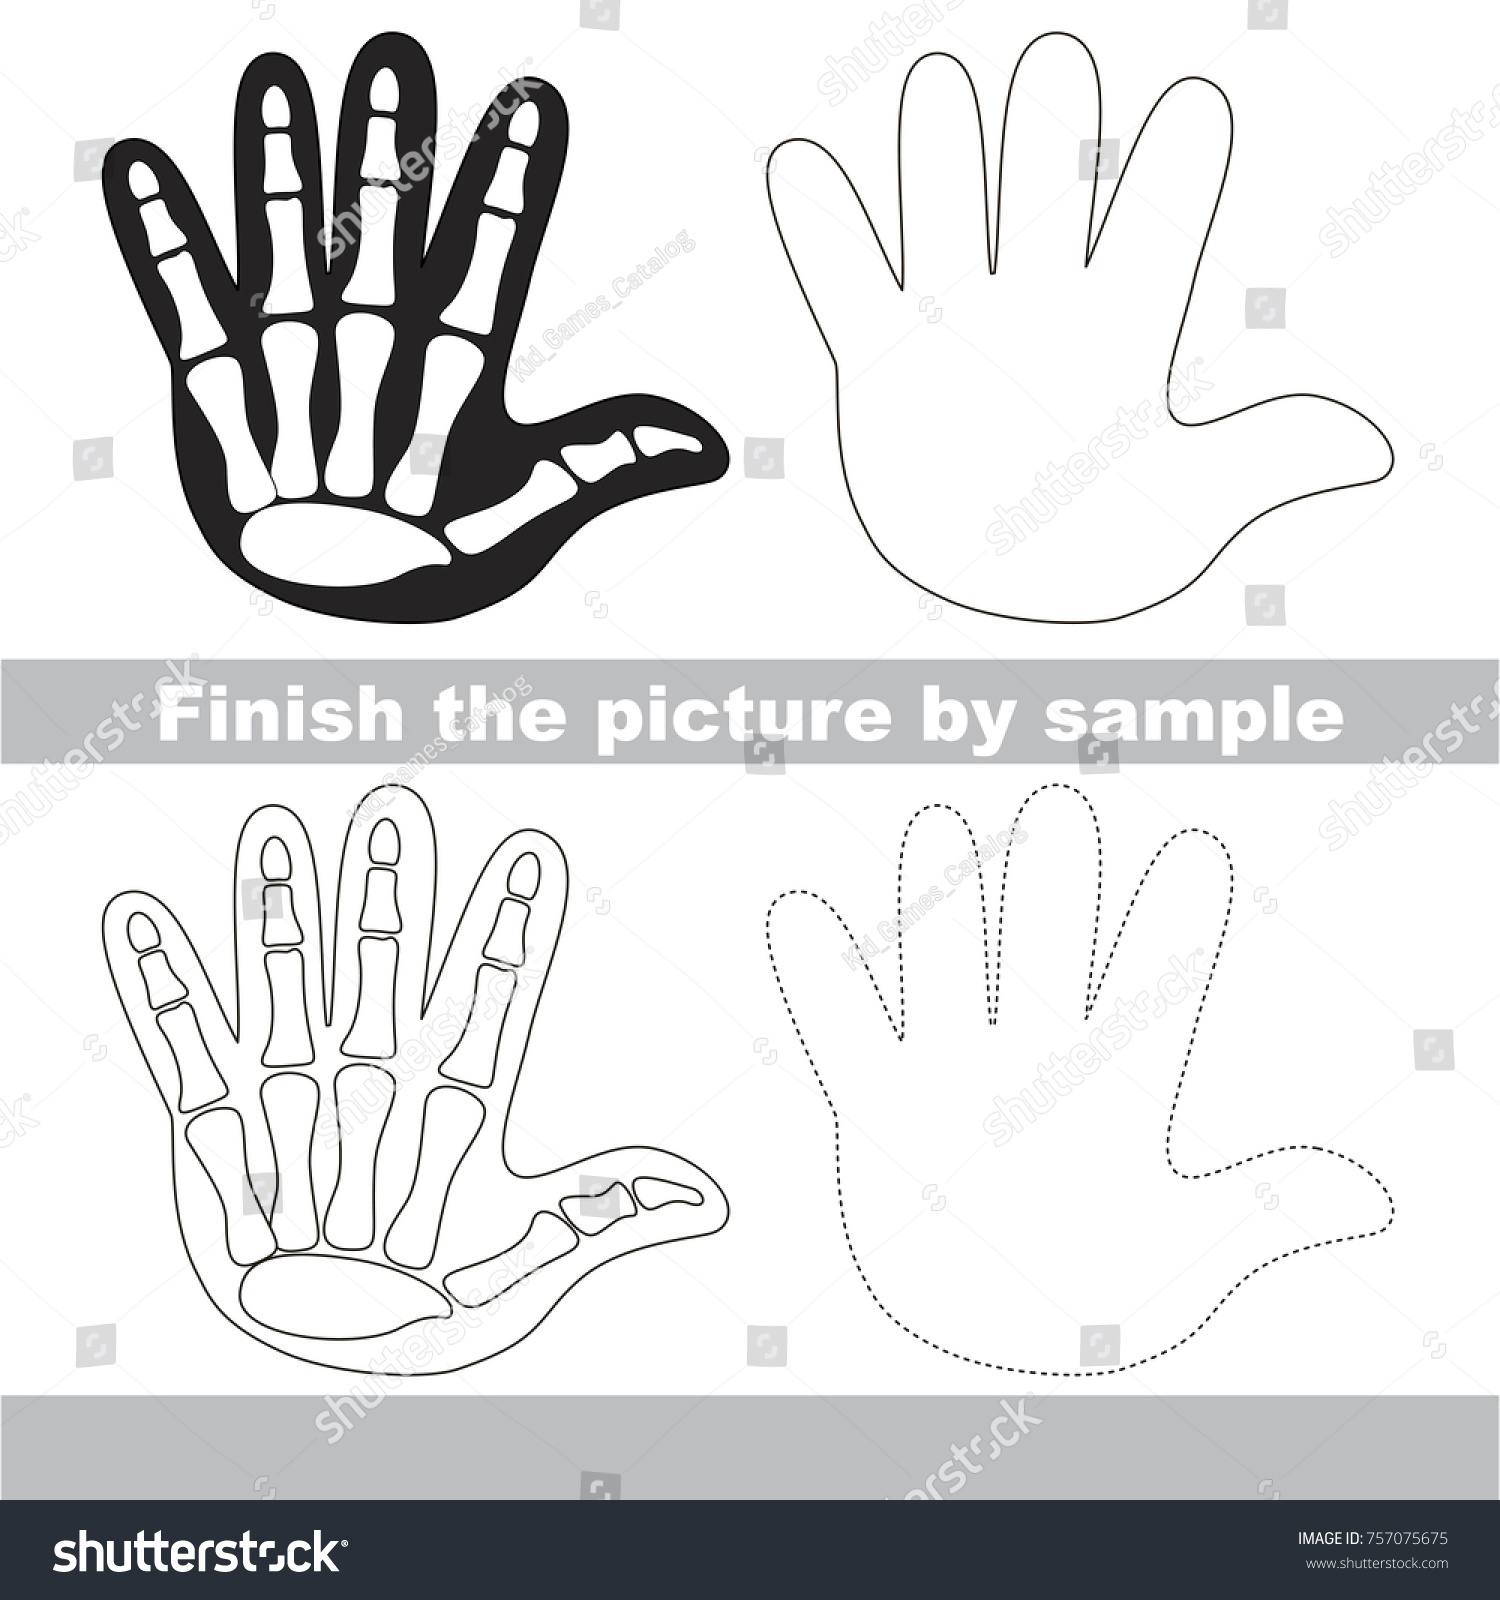 Drawing Worksheet Preschool Kids Easy Gaming Stock Vector Royalty Free 757075675